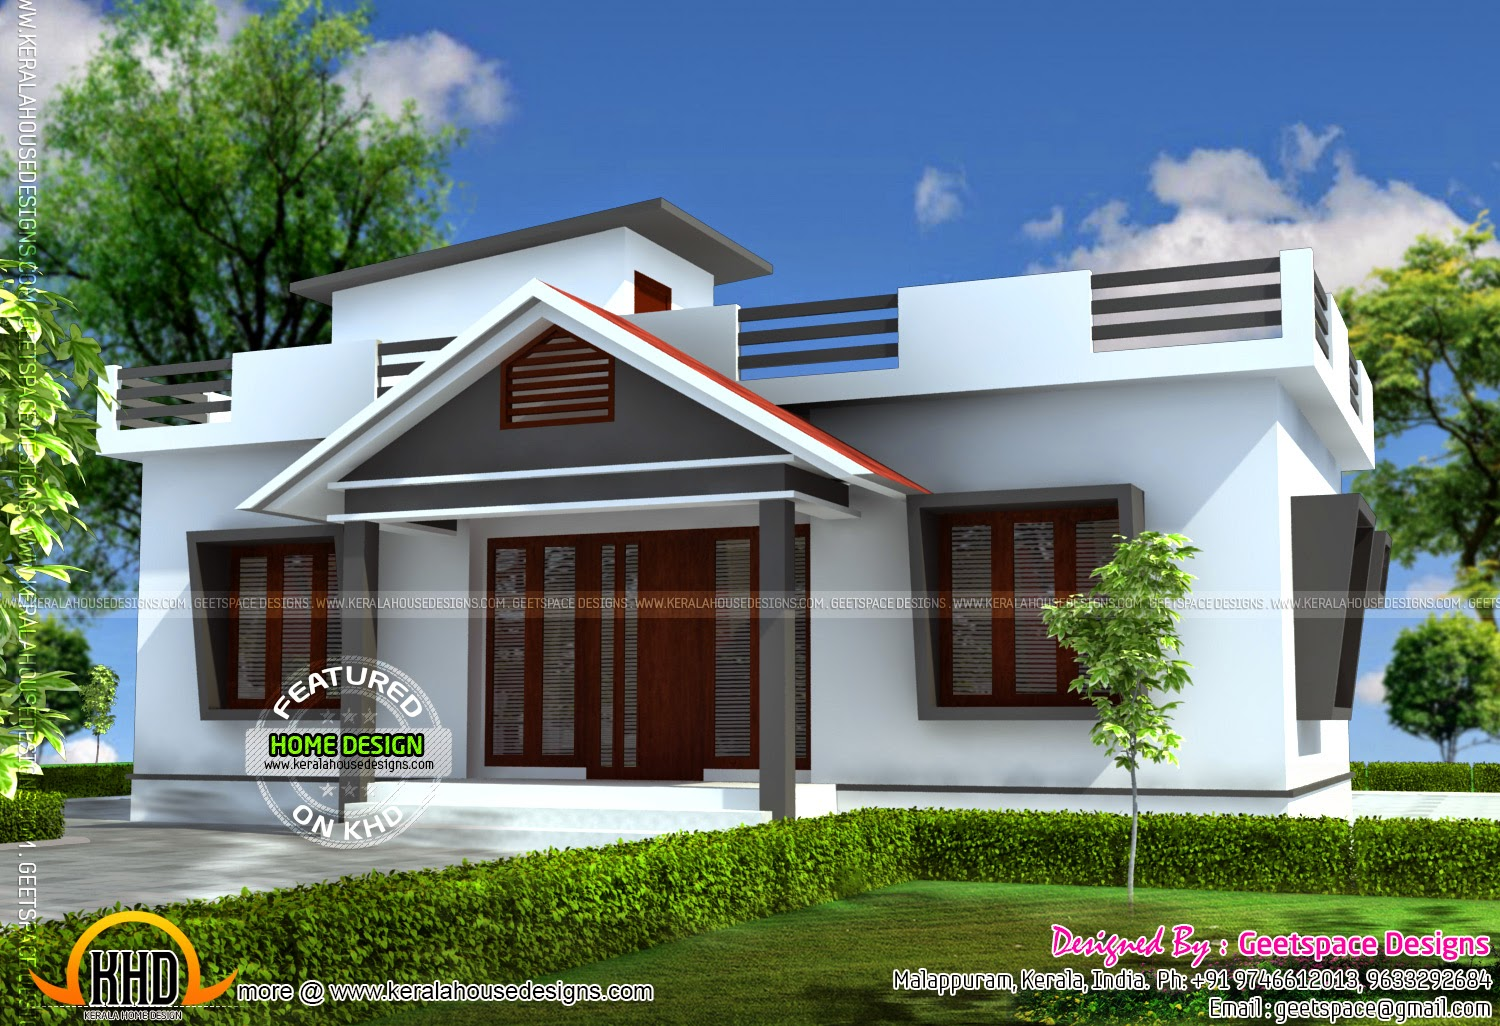 Small house in 903 square feet kerala home design and floor plans Home design and layout